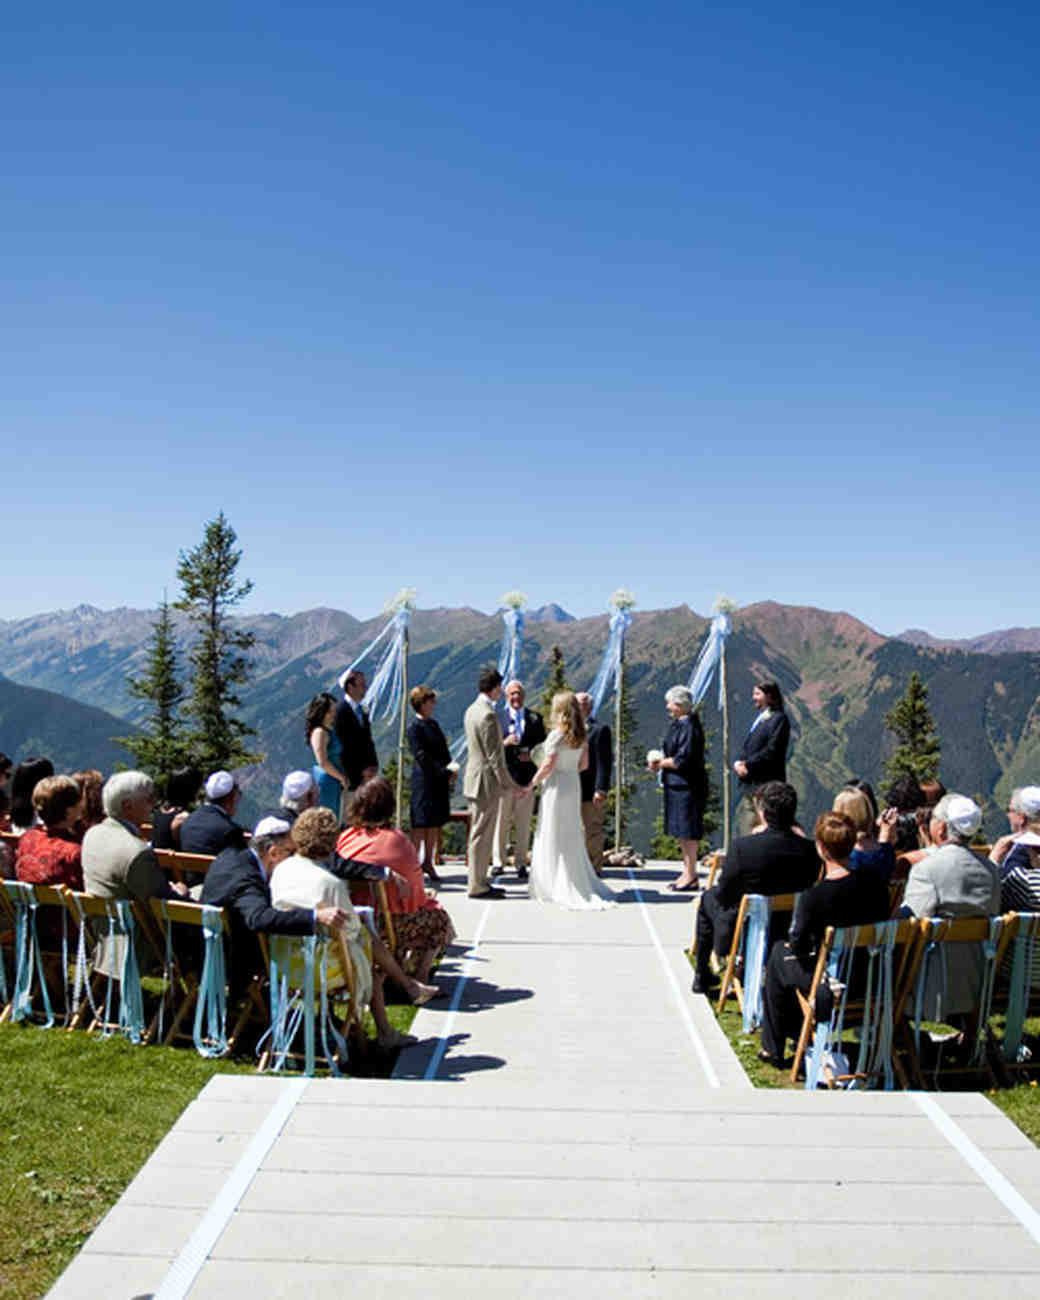 Ceremony Wedding Places: 7 Memorable Places Where You Can Exchange Vows In The